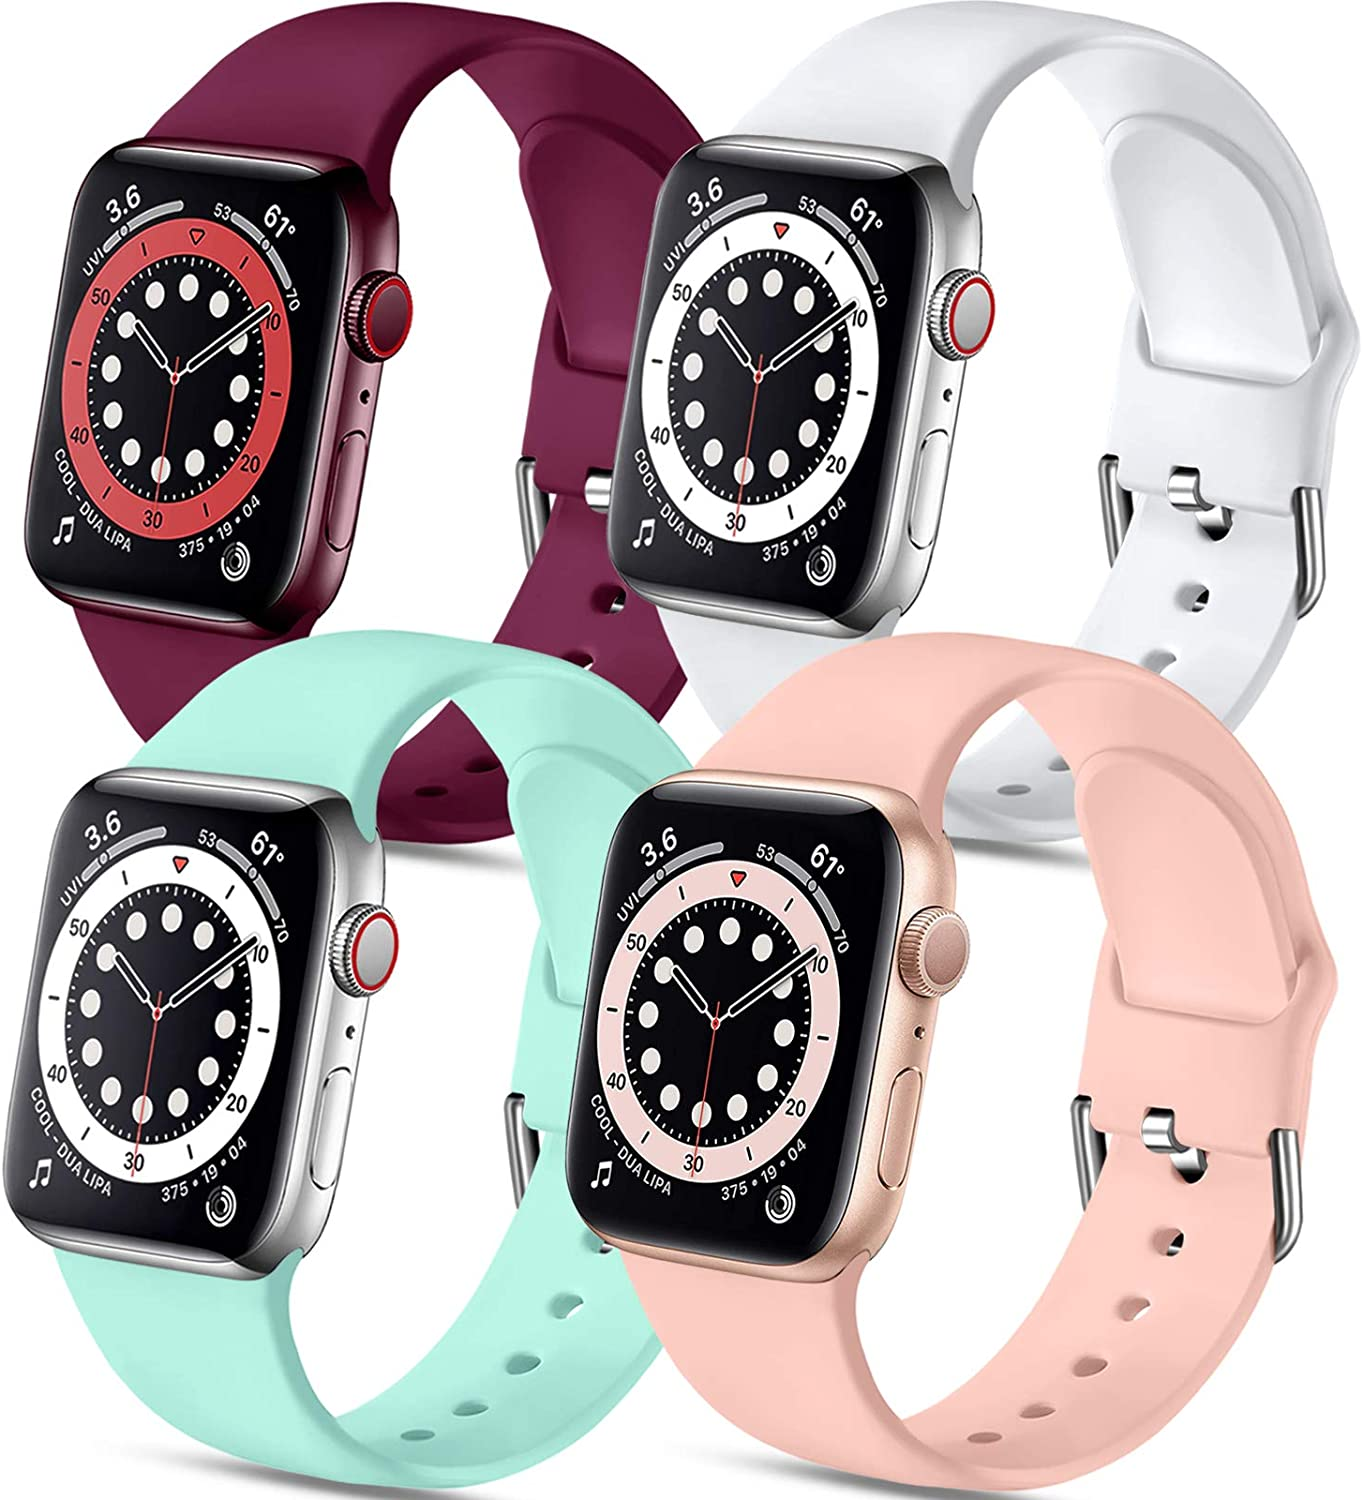 Muranne Compatible with Apple Watch Band 40mm 38mm iWatch SE & Series 6 & Series 5 4 3 2 1 for Women Men, Cute Durable Soft Silicone Sport Replacement Strap, Black Red Gray Blue Gray, S/M